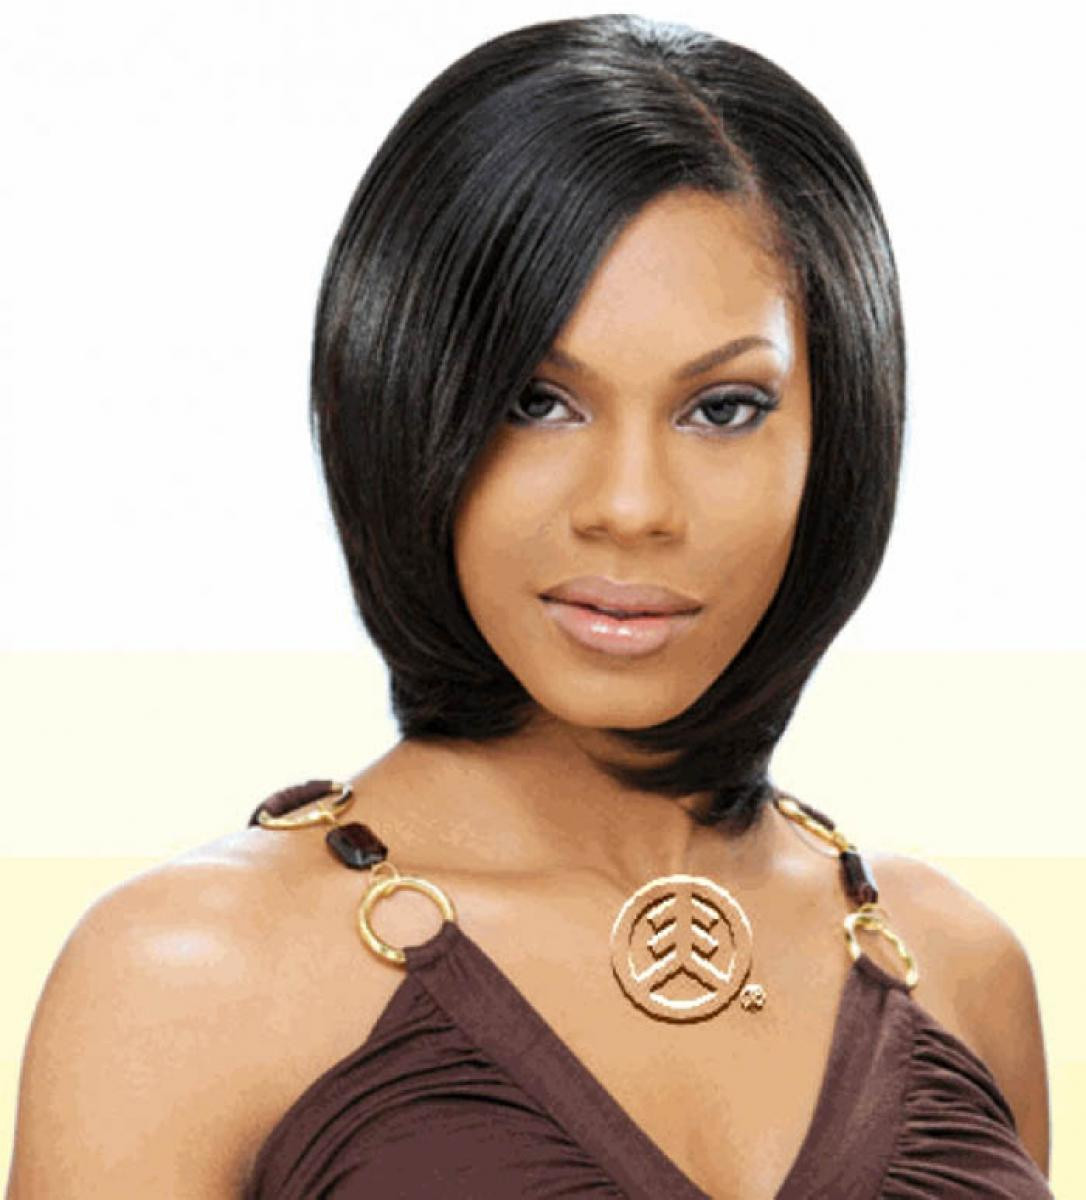 Best ideas about Quick Weave Hairstyles For Black Women . Save or Pin of Black Women Short Hairstyles with Weave Now.